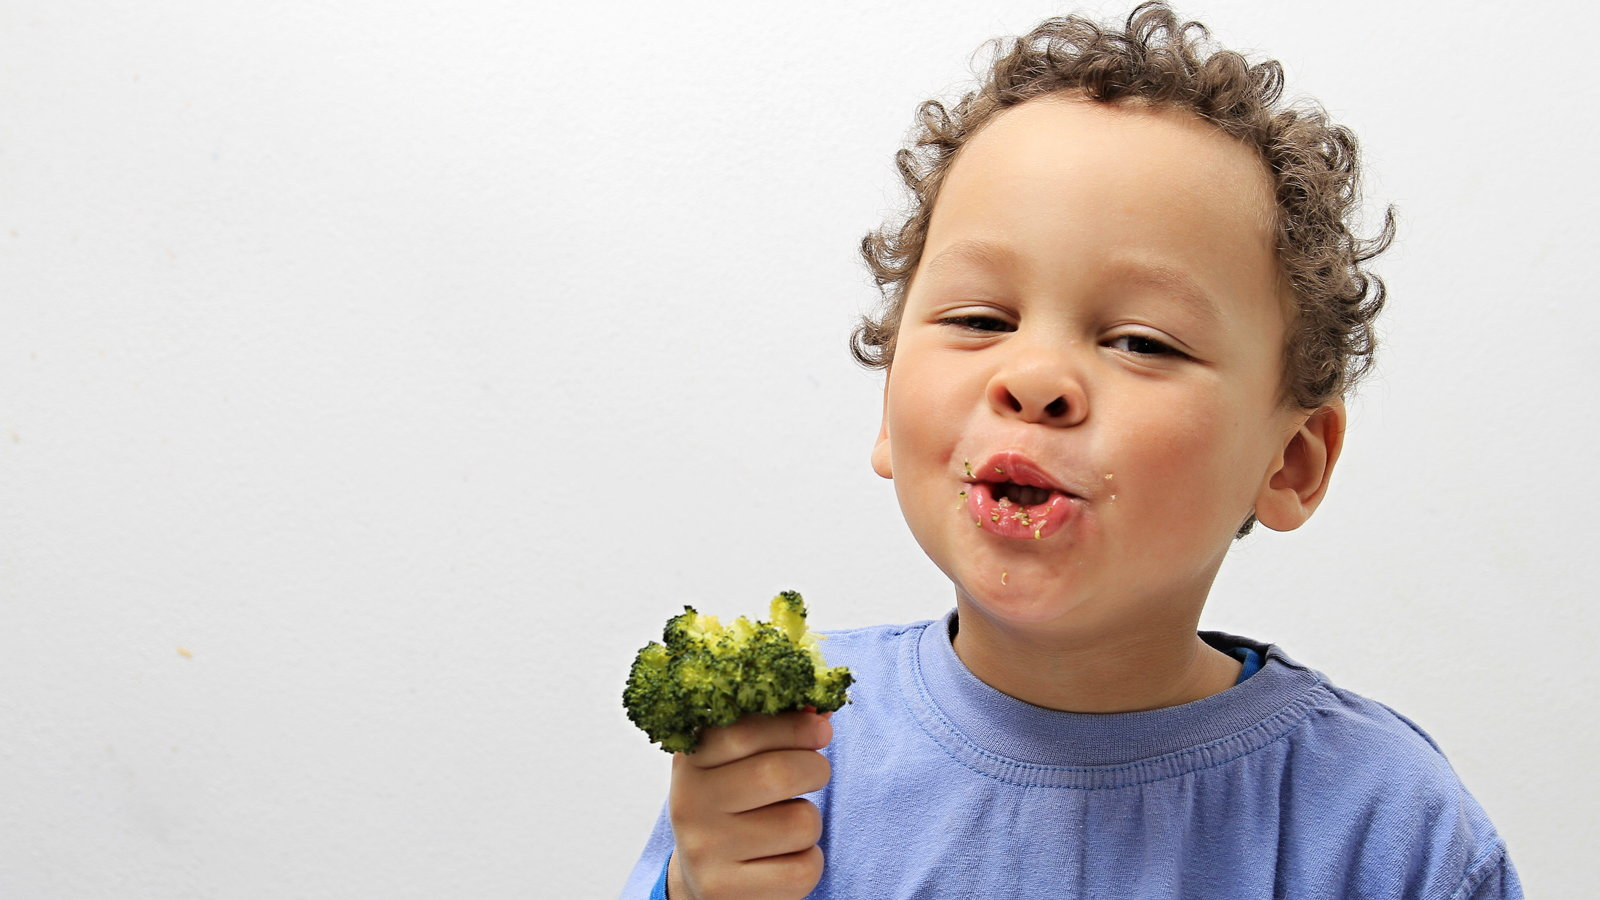 little boy eating broccoli